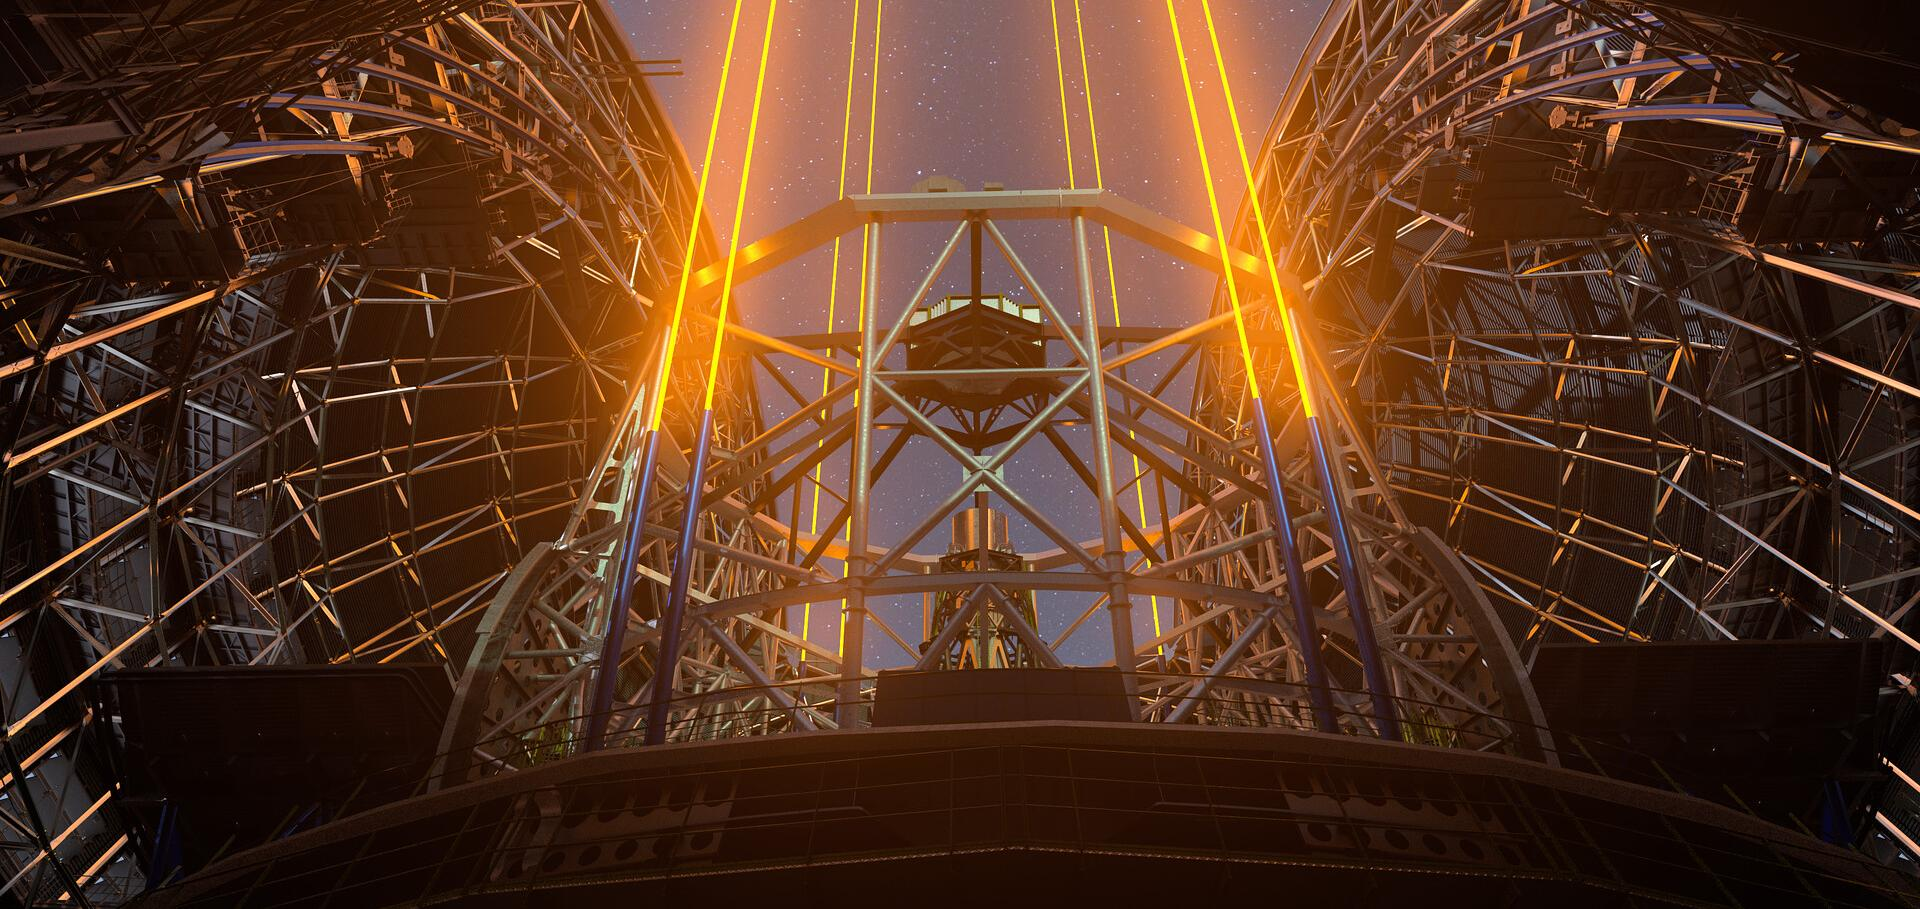 The lasers producing artificial guide stars of the Extremely Large Telescope